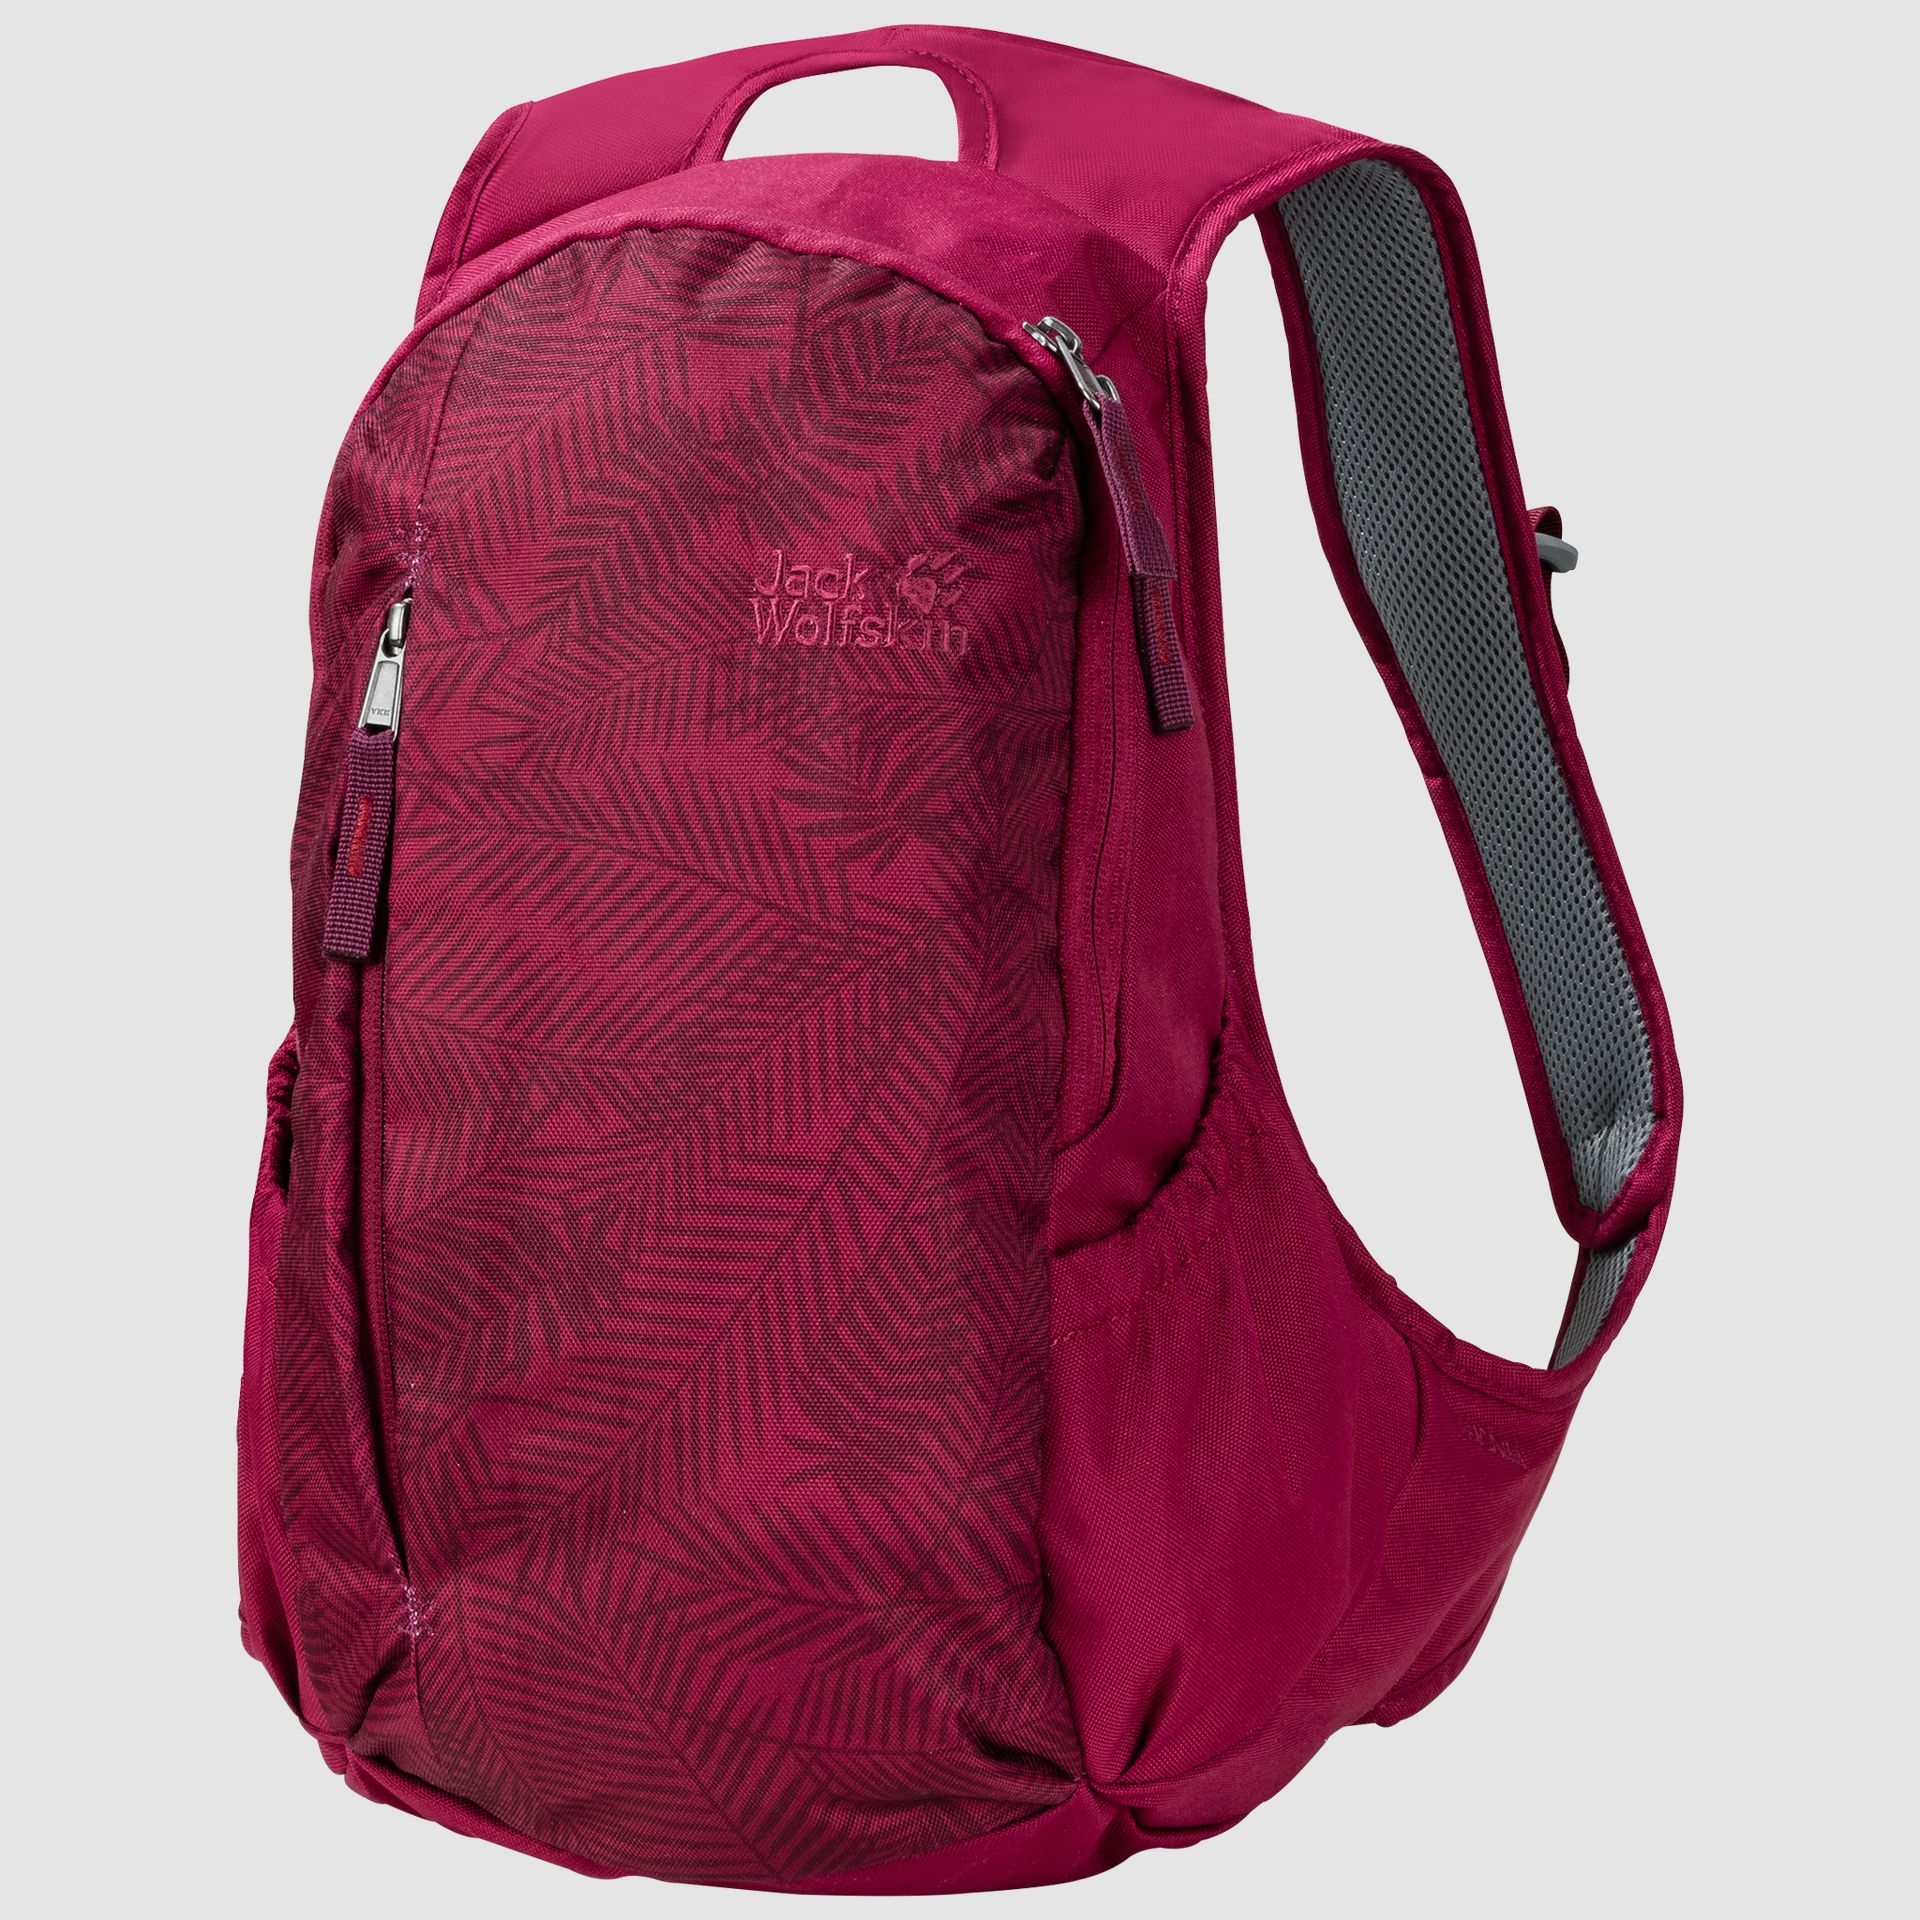 Jack wolfskin Ancona Womens Day Pack Leaf Red